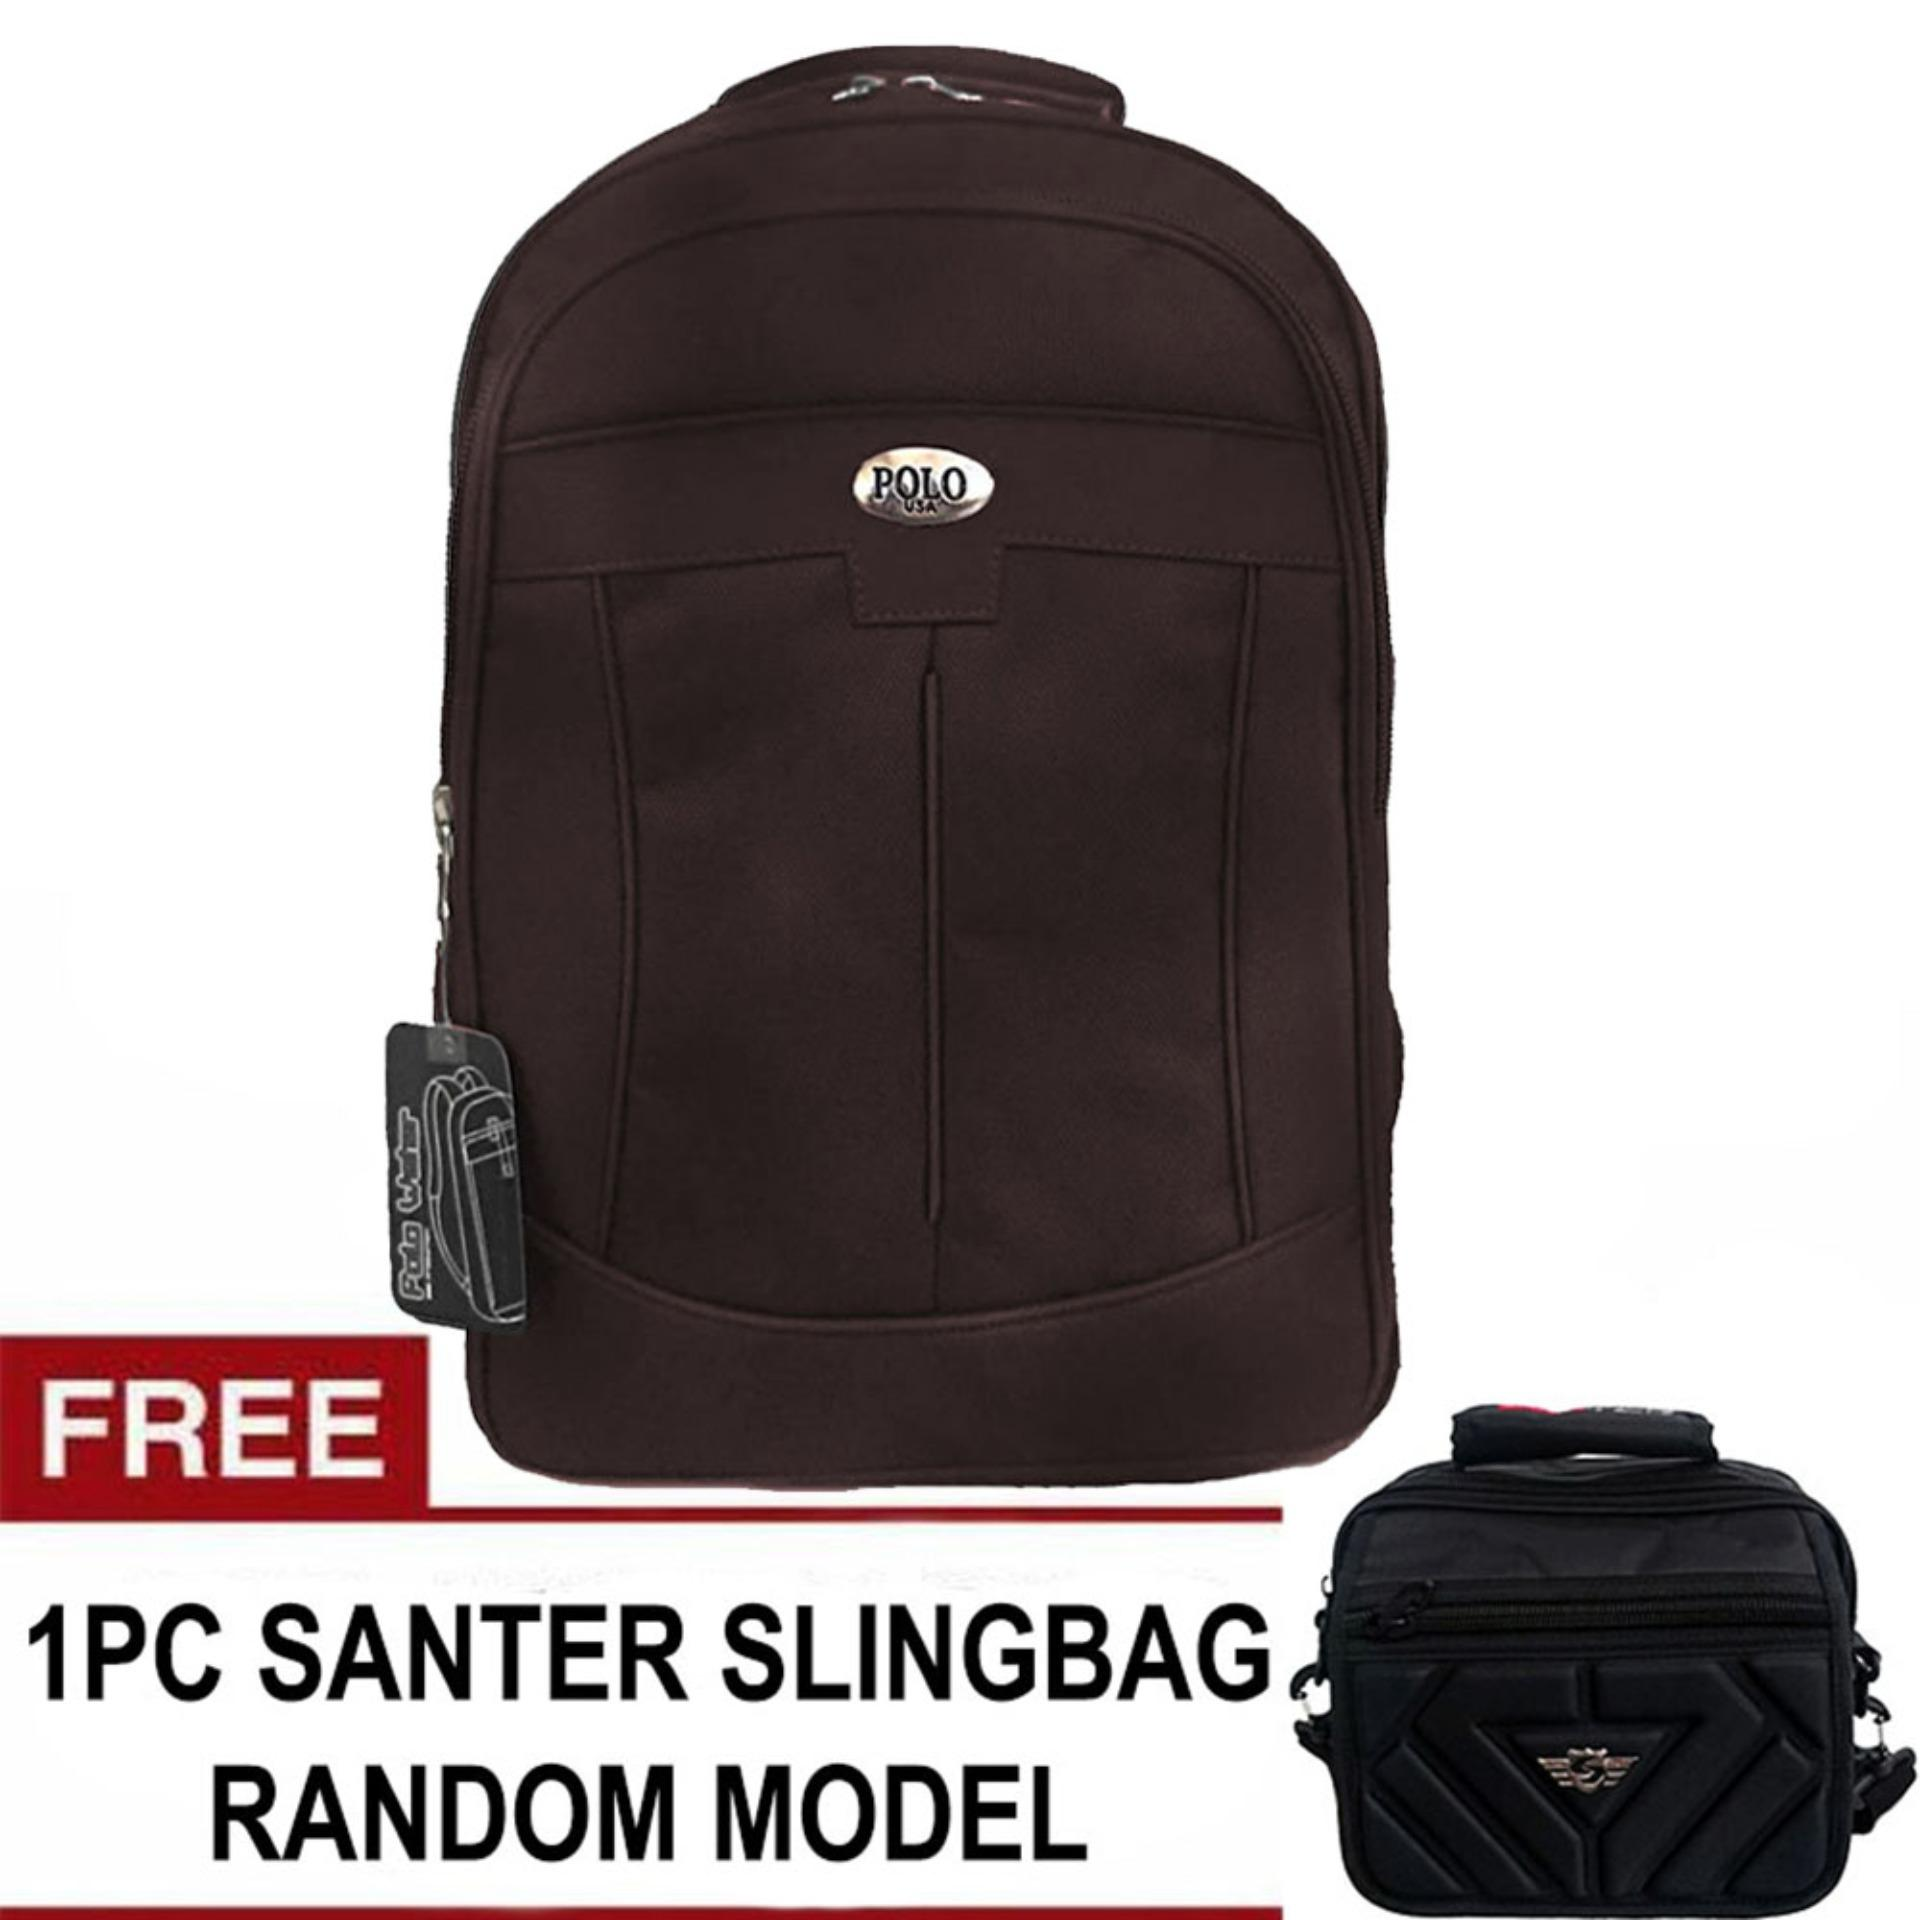 Harga Penawaran PoloClub Decker Laptop Backpack + FREE SANTER Wide Random Model Slingbag discount - Hanya